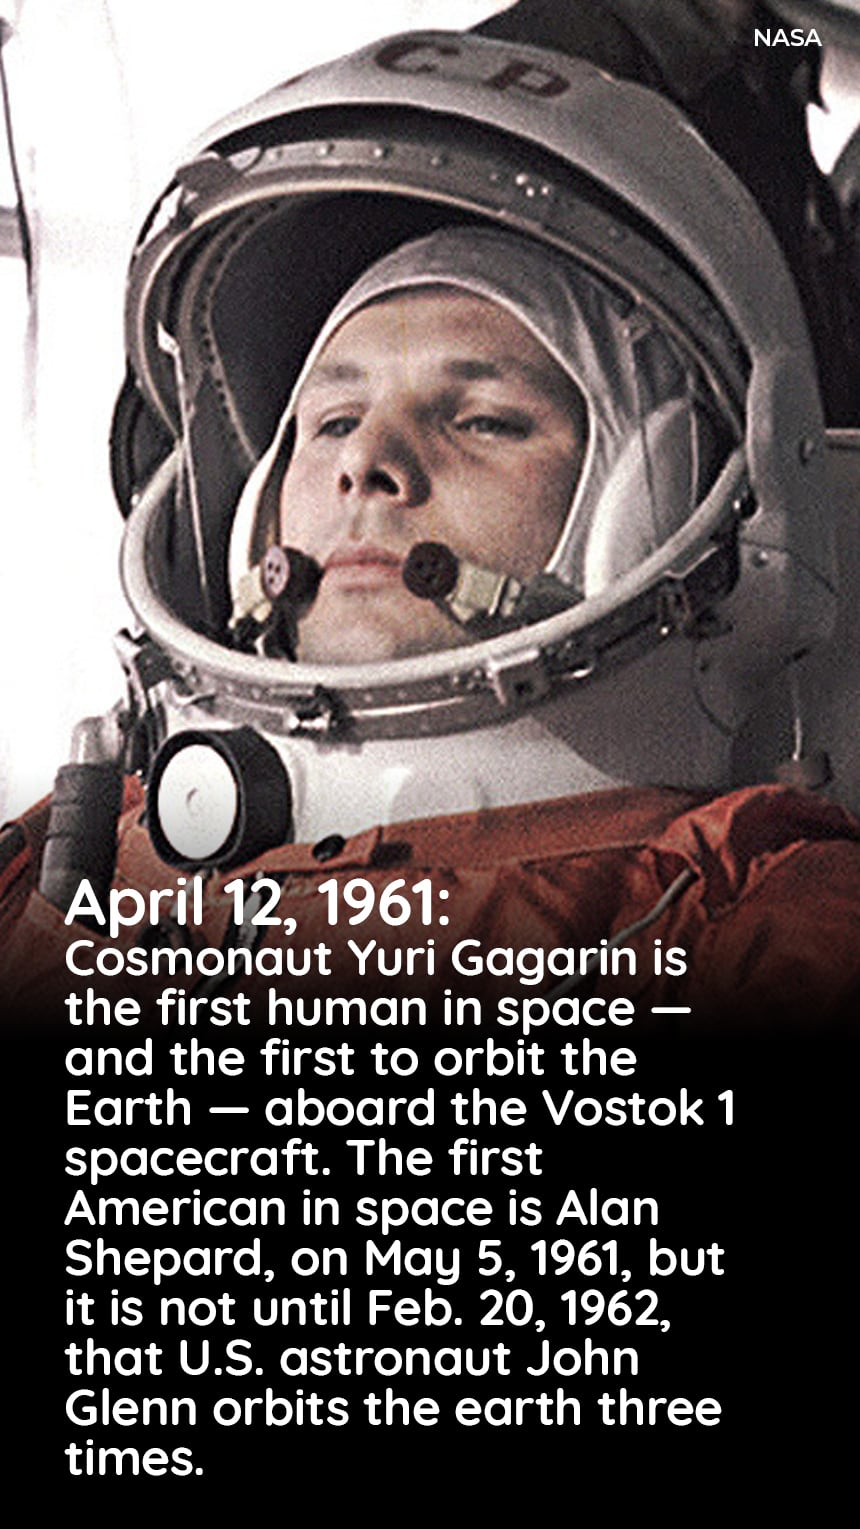 April 12, 1961: Cosmonaut Yuri Gagarin is the first human in space and the first to orbit the earth aboard the Vostok 1 spacecraft . The first American in space is Alan Shepard, on May 5, 1961, but it is not until February 20, 1962, that U..S. astronaut, John Glenn orbits the earth three times.